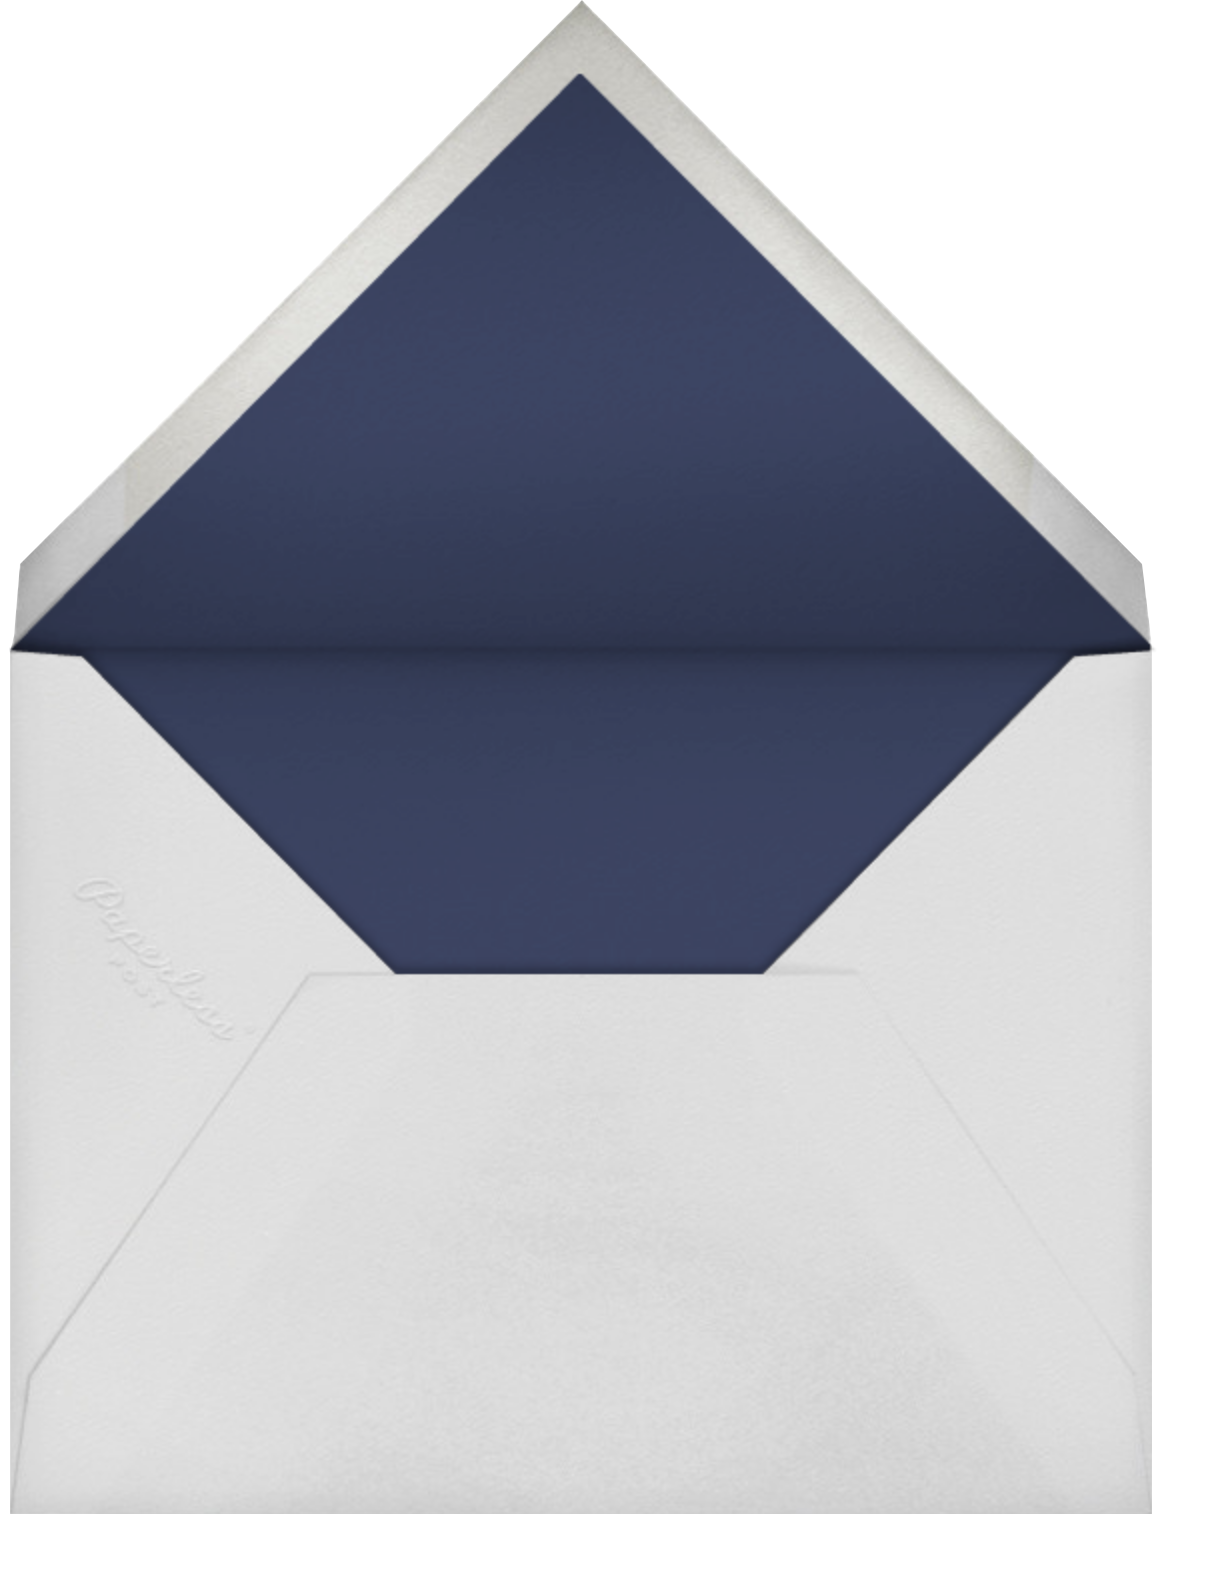 Stempel (Stationery) - Navy  - Vera Wang - Personalized stationery - envelope back